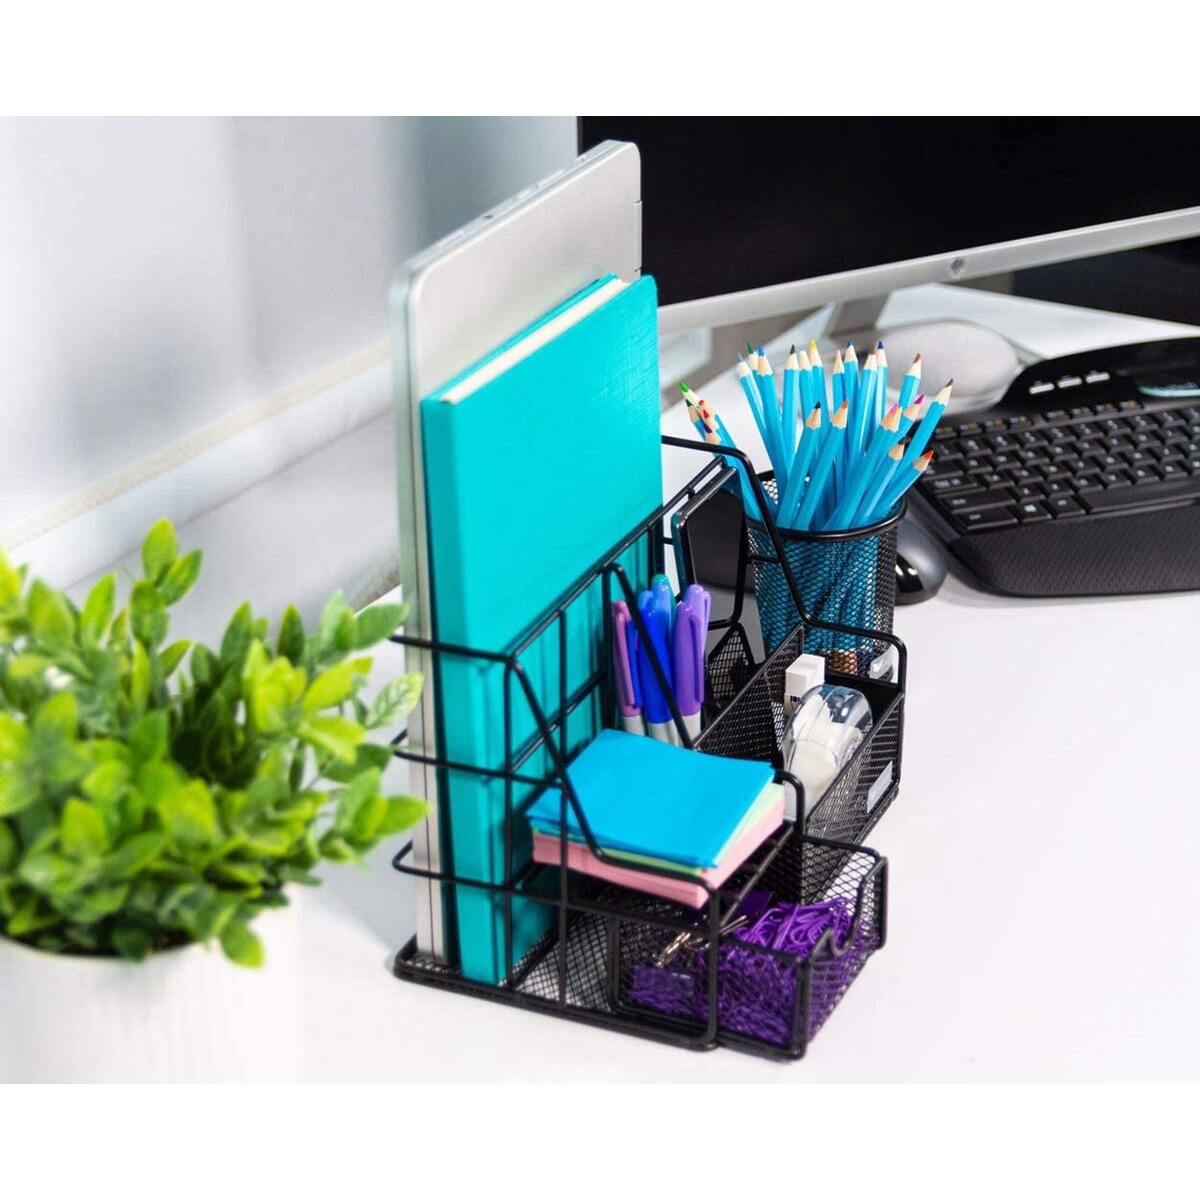 Orgowise Mesh Desk Organizers and Accessories Set. Black Desktop Organizer with Pen Holder and Paper File Organizer for Real Desk Organization. Cute Office Supplies Storage for Kids and Adults…